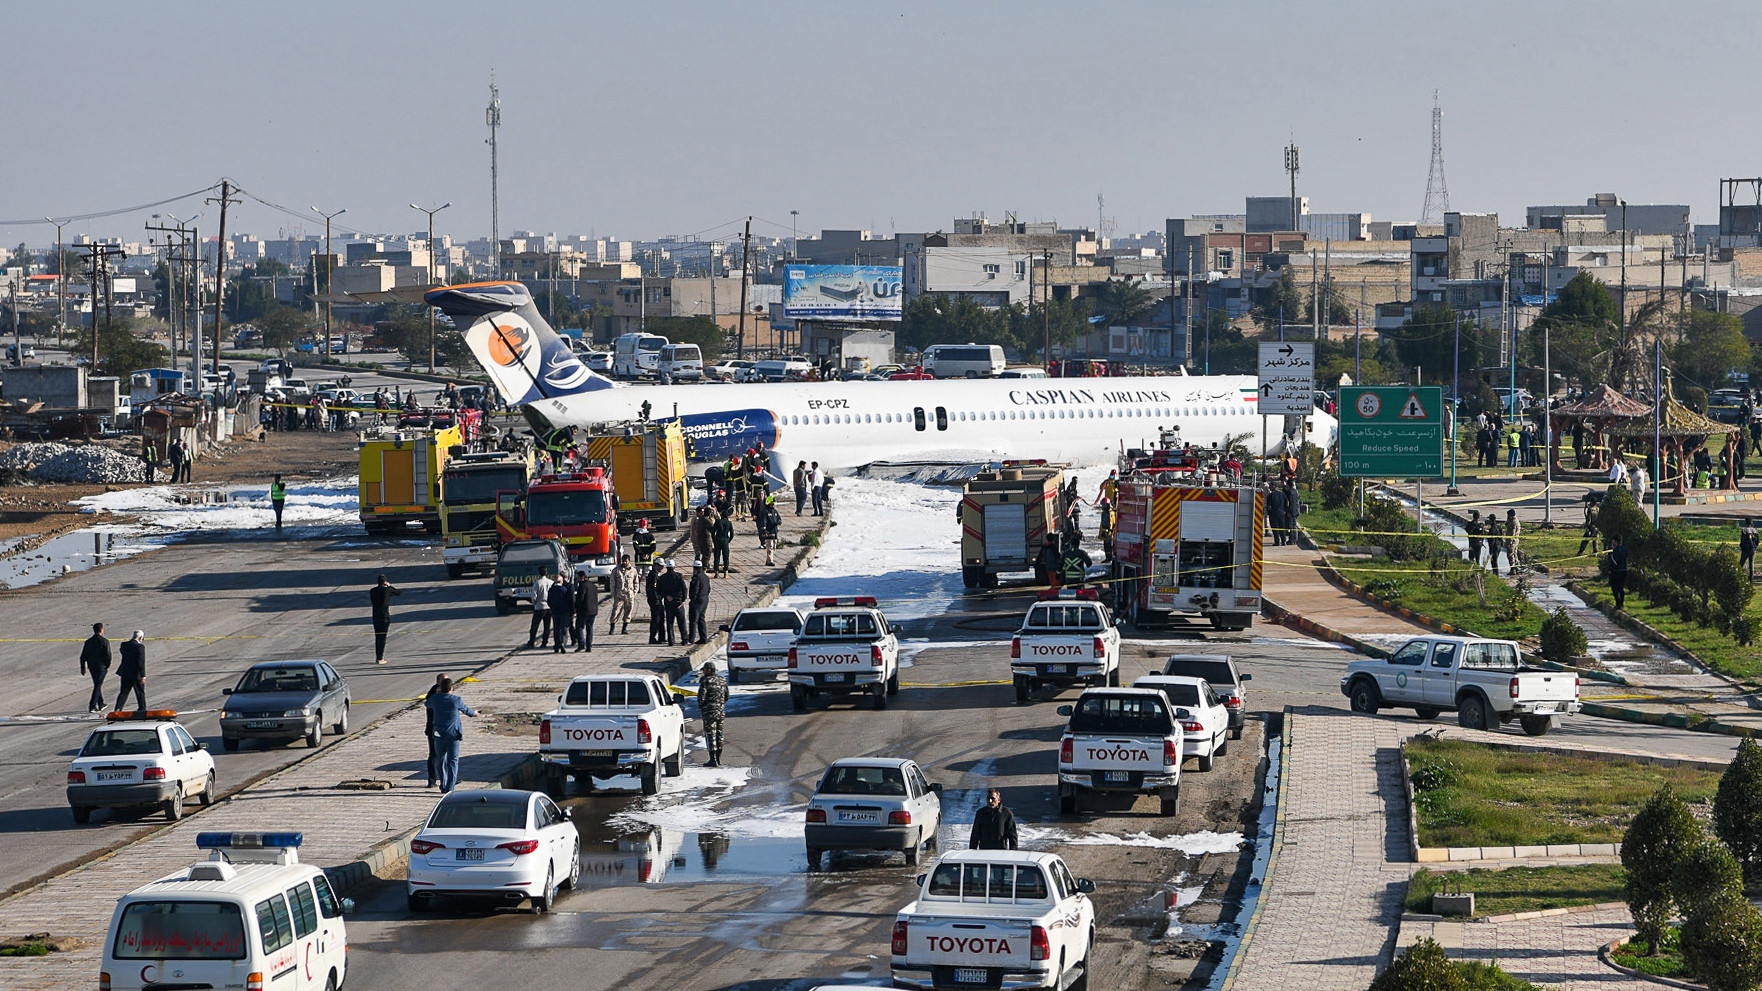 Caspian Airlines plane overshoots runway, makes botched landing on Iranian highway